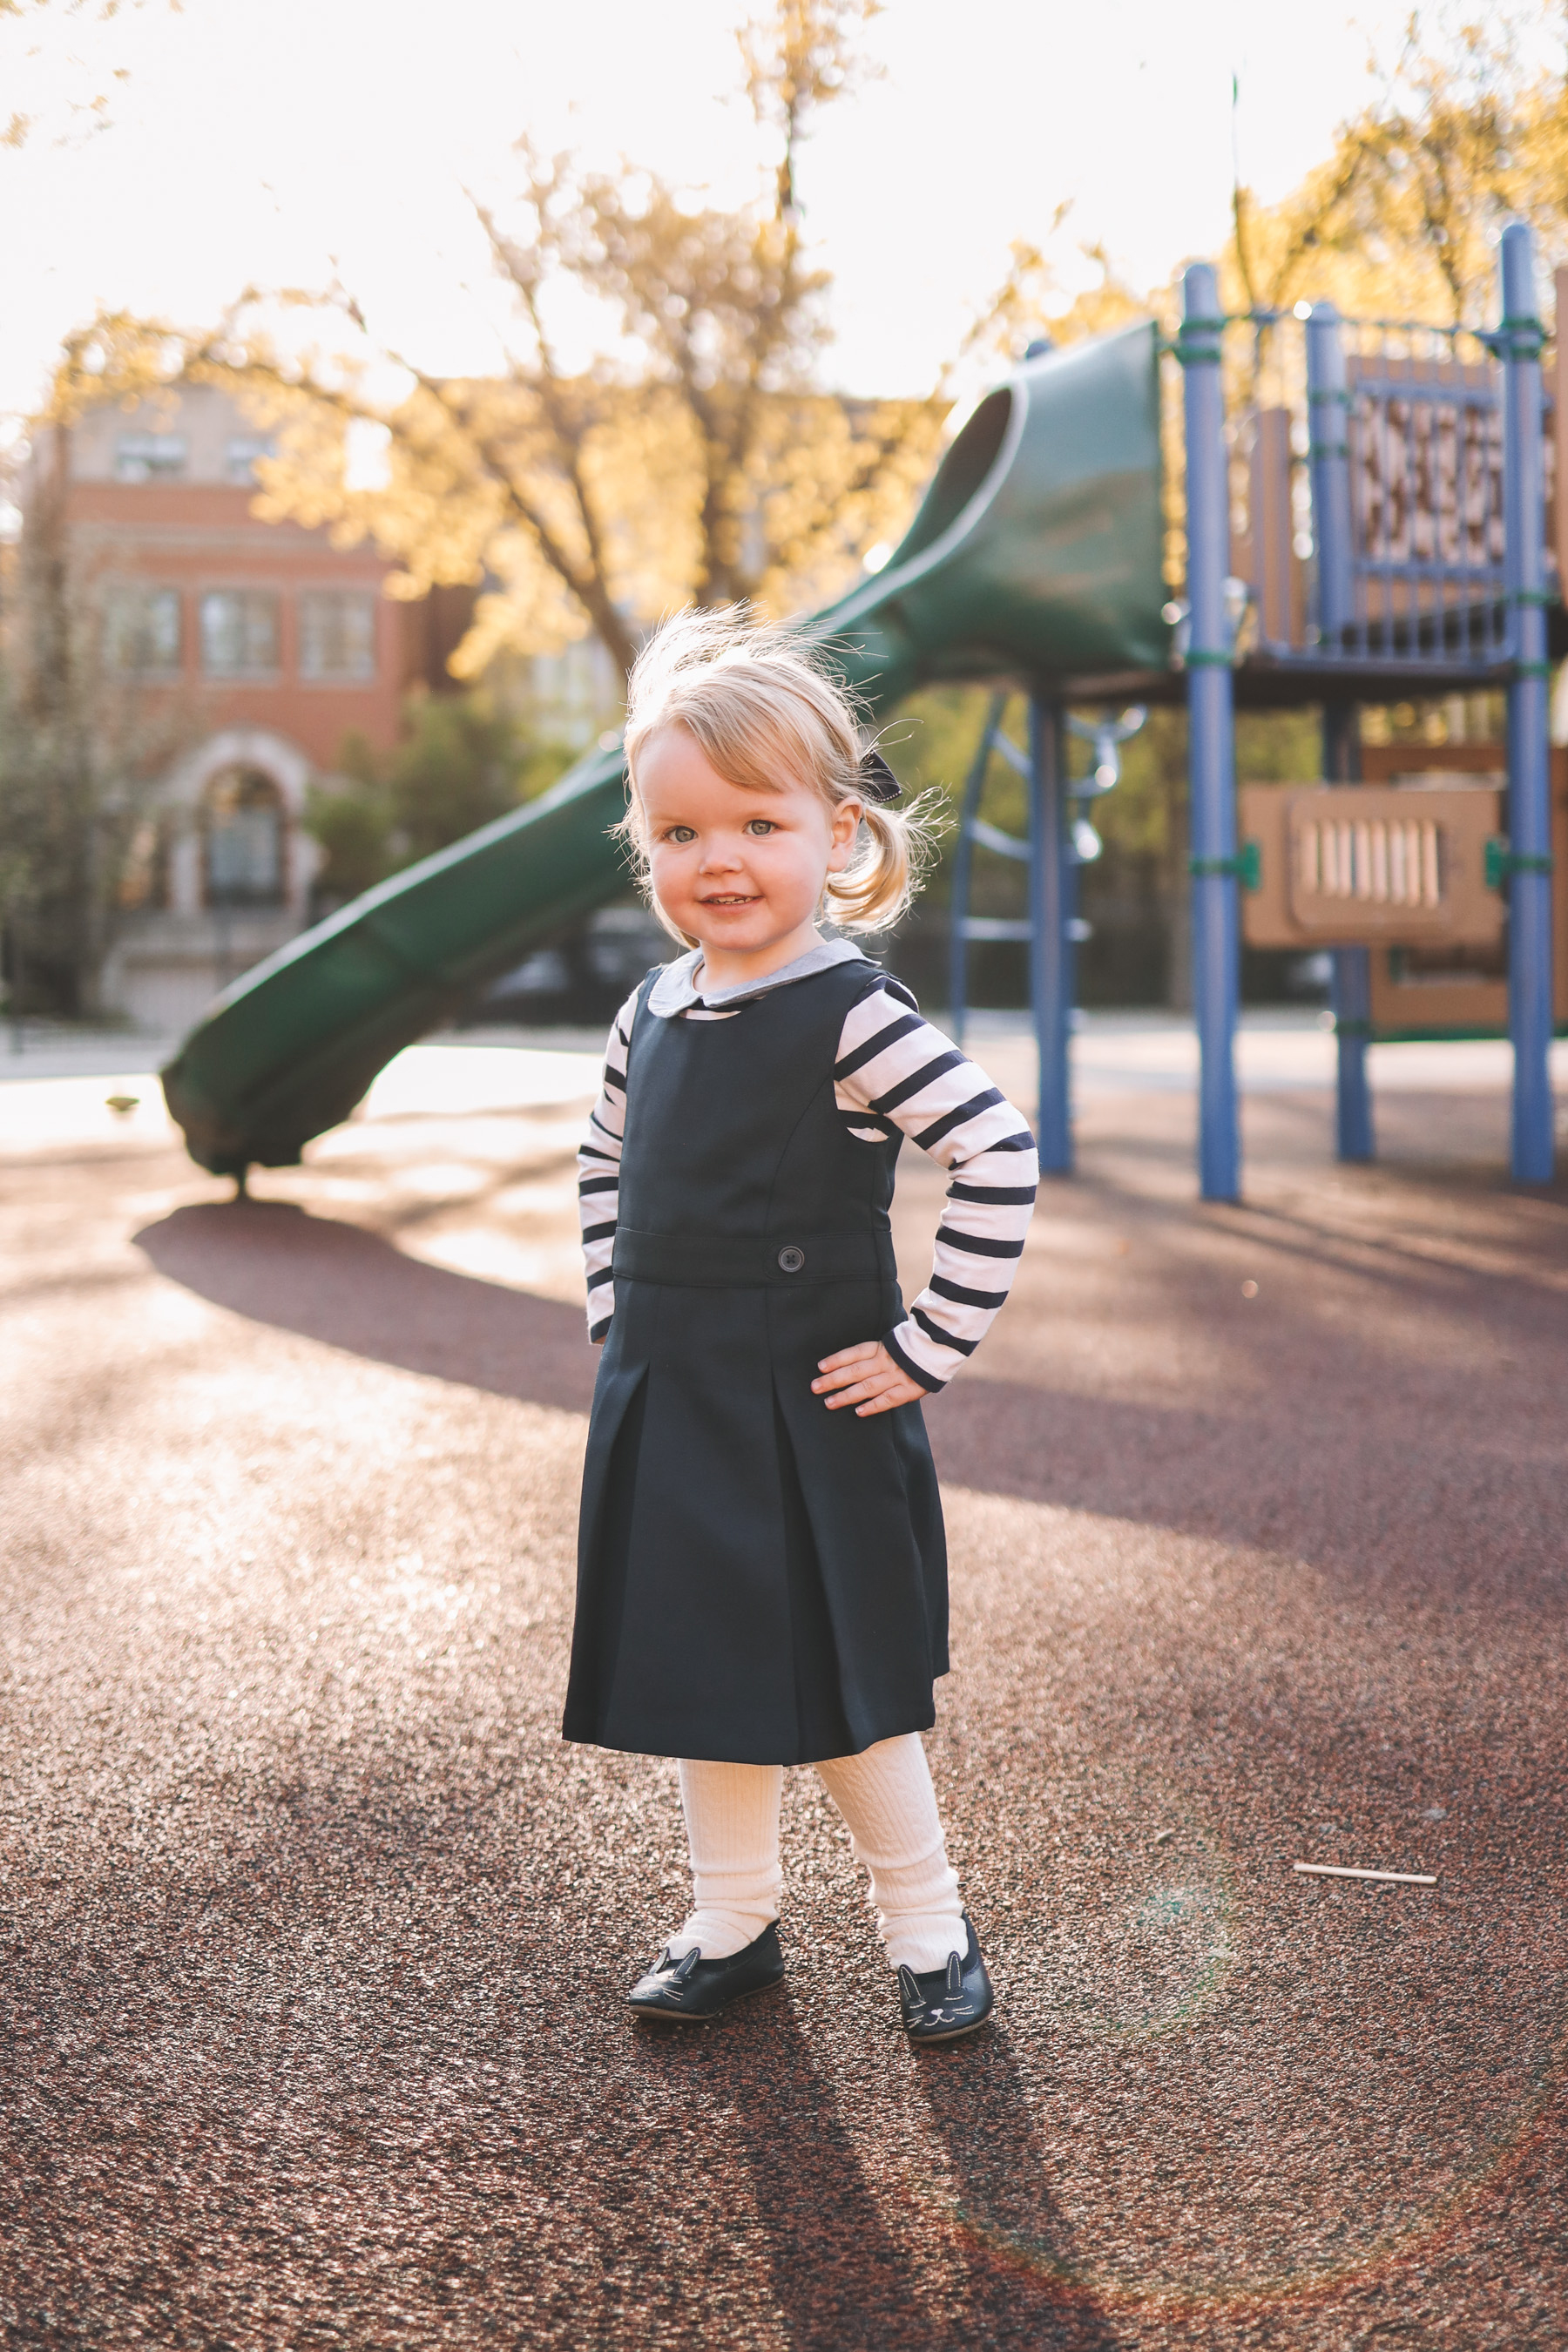 Outfit details: Emma's Bunny Shoes, Navy Jumper, Tights and Peter Pan Shirt